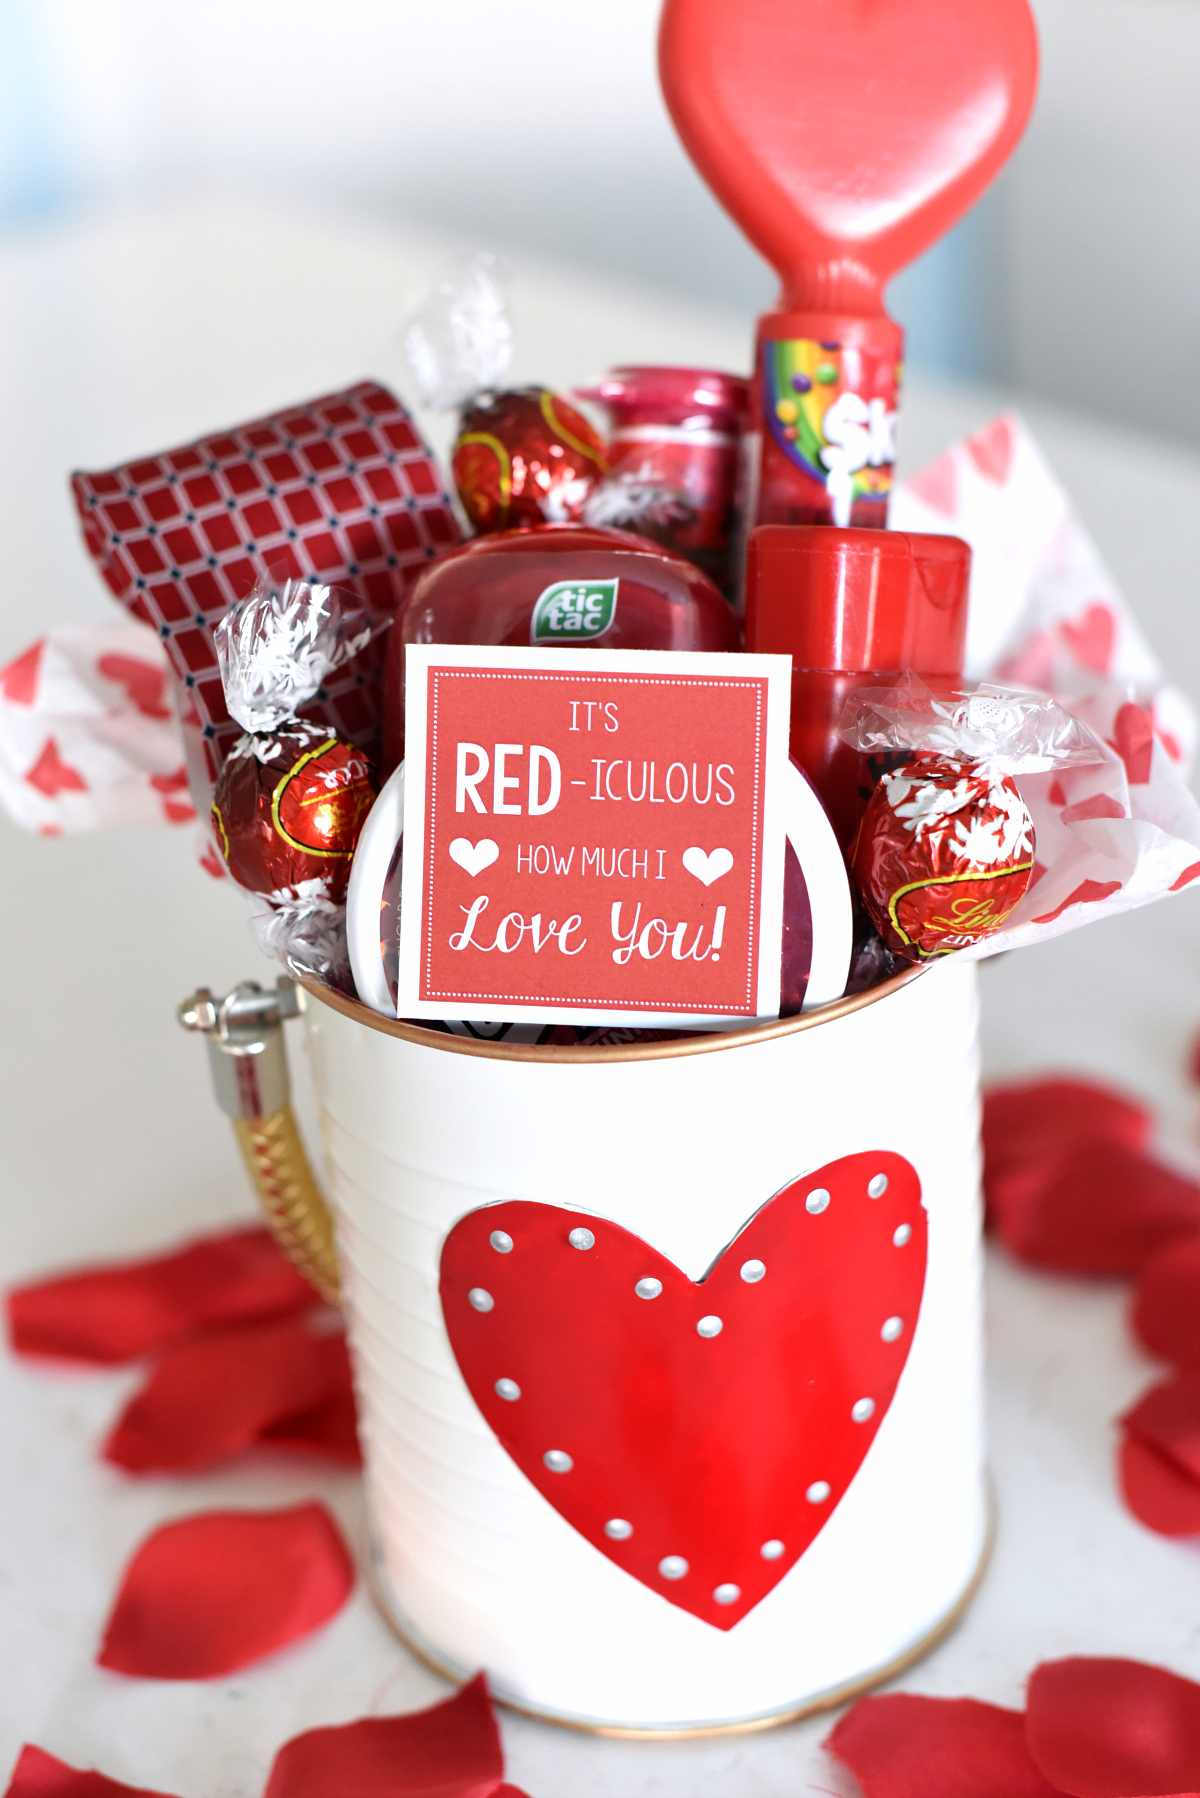 25 diy valentine's day gift ideas teens will love - raising teens today